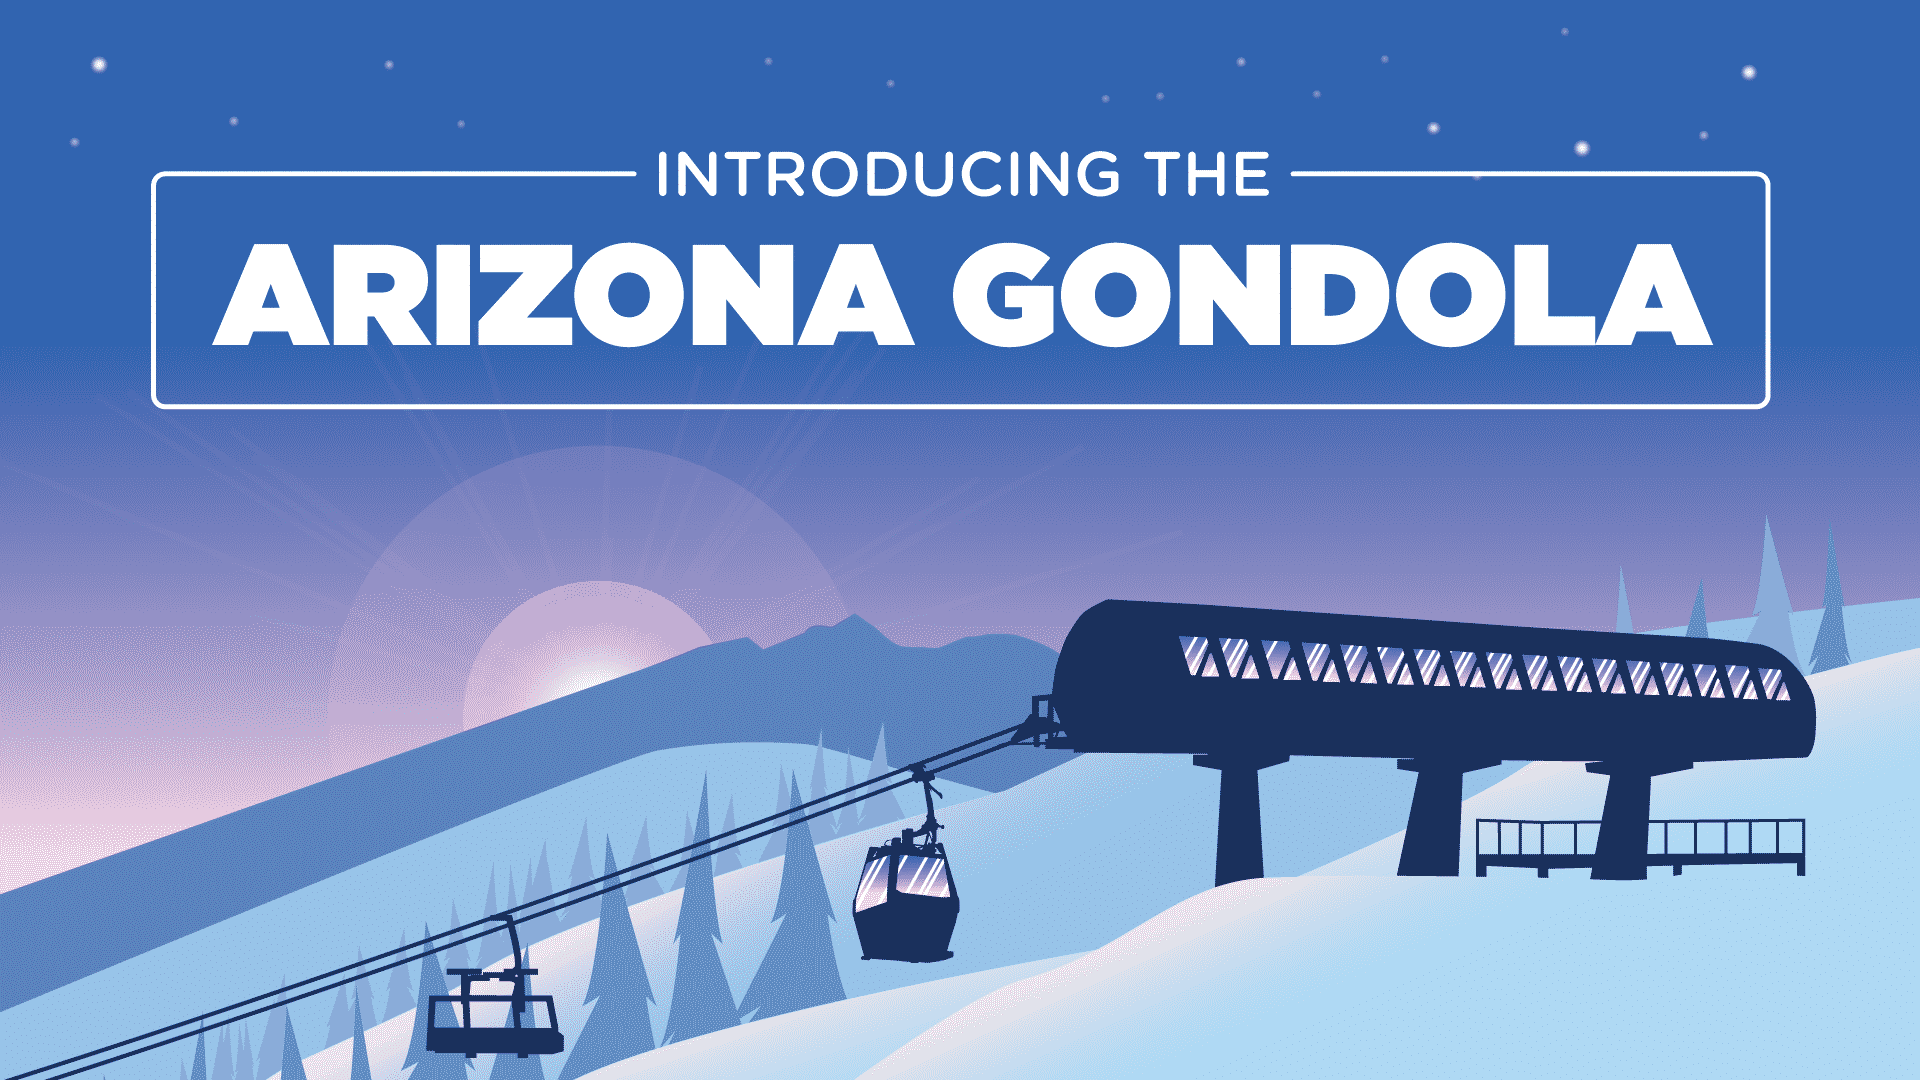 Introducing the Arizona Gondola